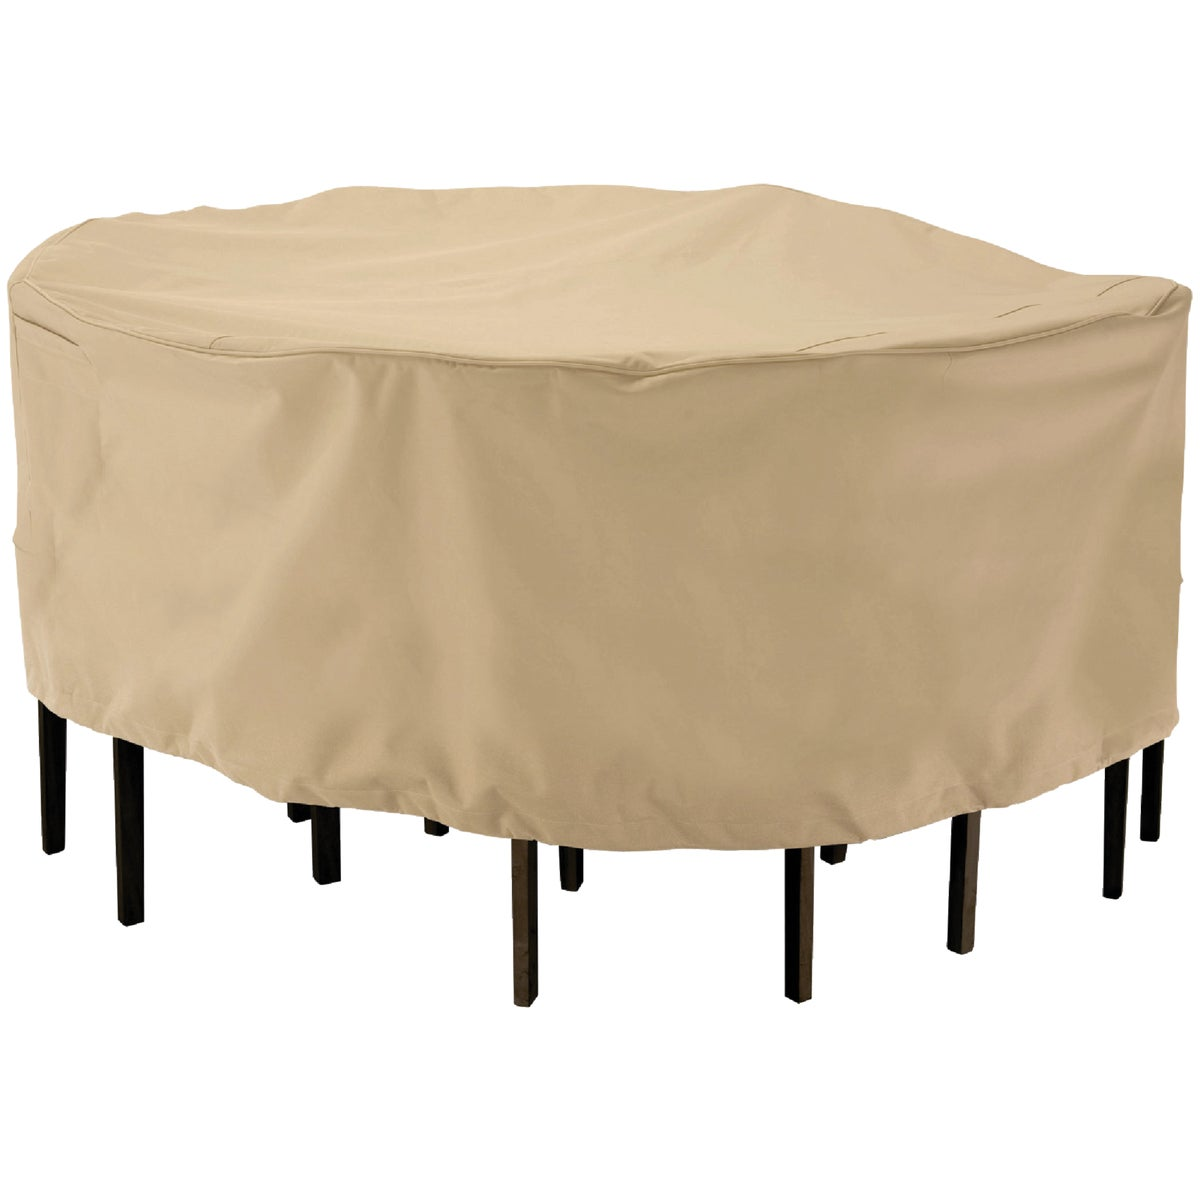 Classic Accessories L RND TABLE/CHAIR COVER 58222